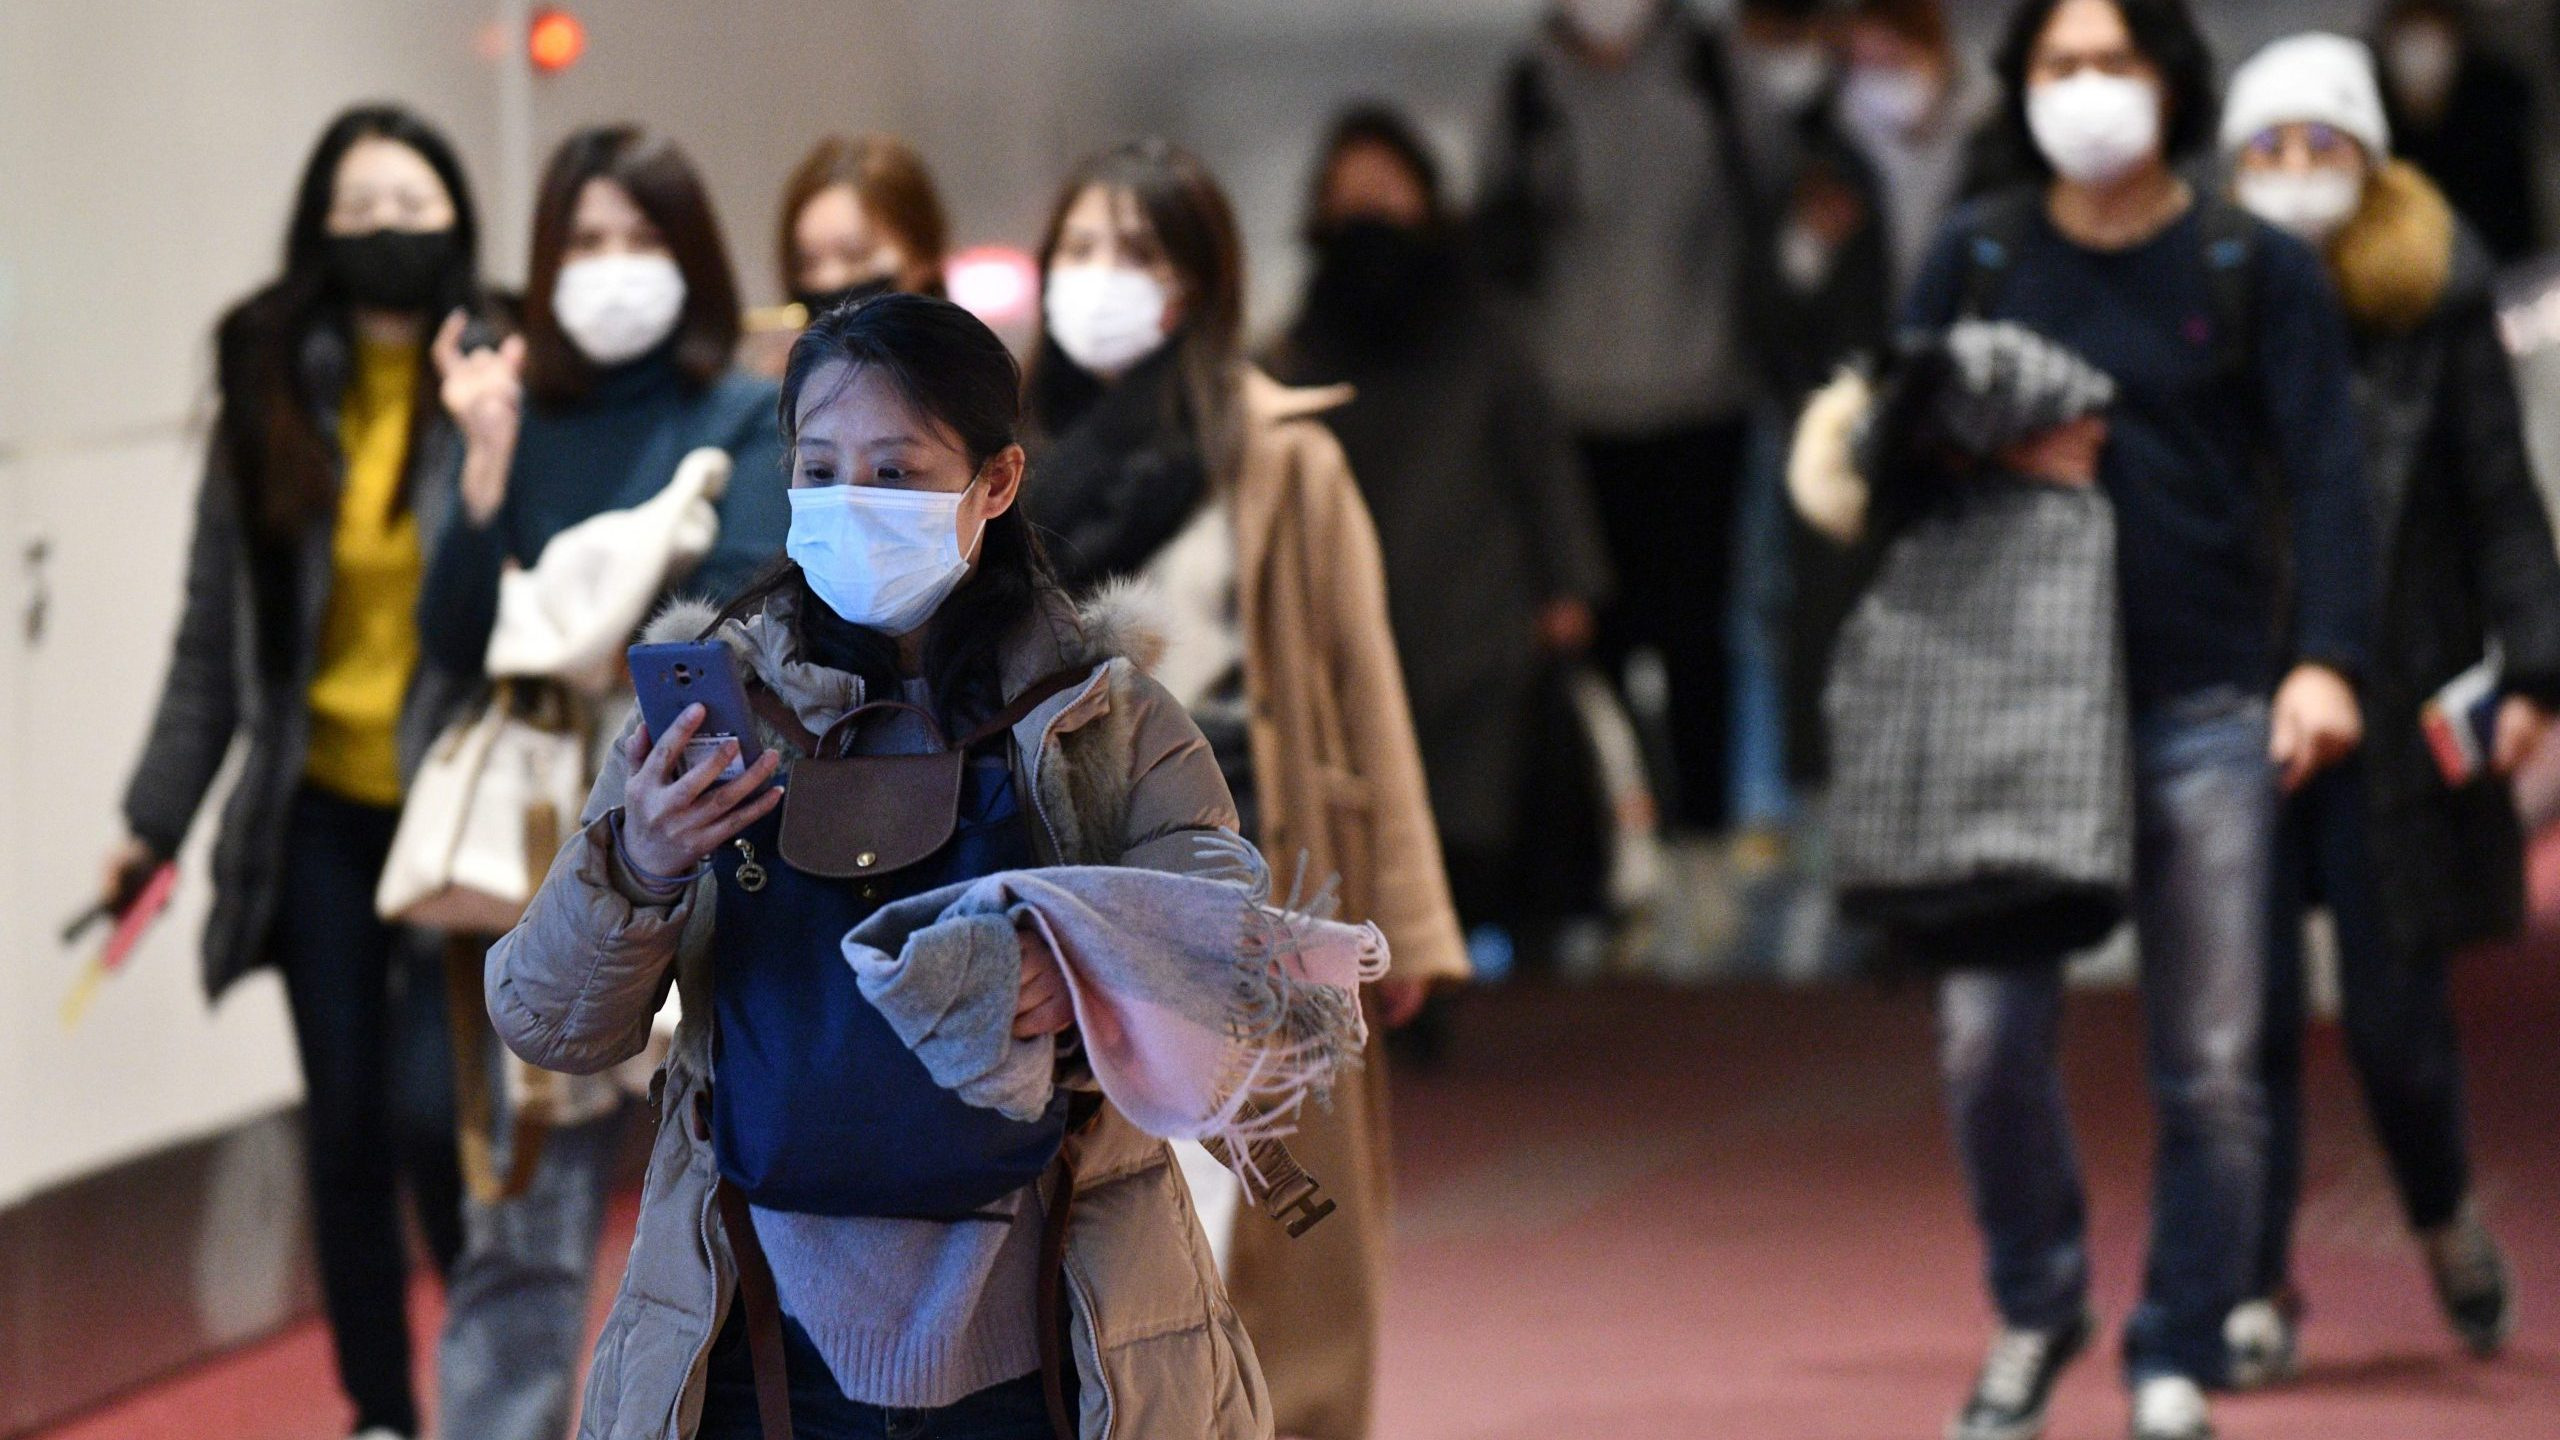 Passengers from overseas arrive at Tokyo's Haneda International Airport on Jan. 28, 2020, after Japan sent a plane to Wuhan to evacuate citizens from the epicenter of the deadly virus outbreak.(Credit: KAZUHIRO NOGI/AFP via Getty Images)